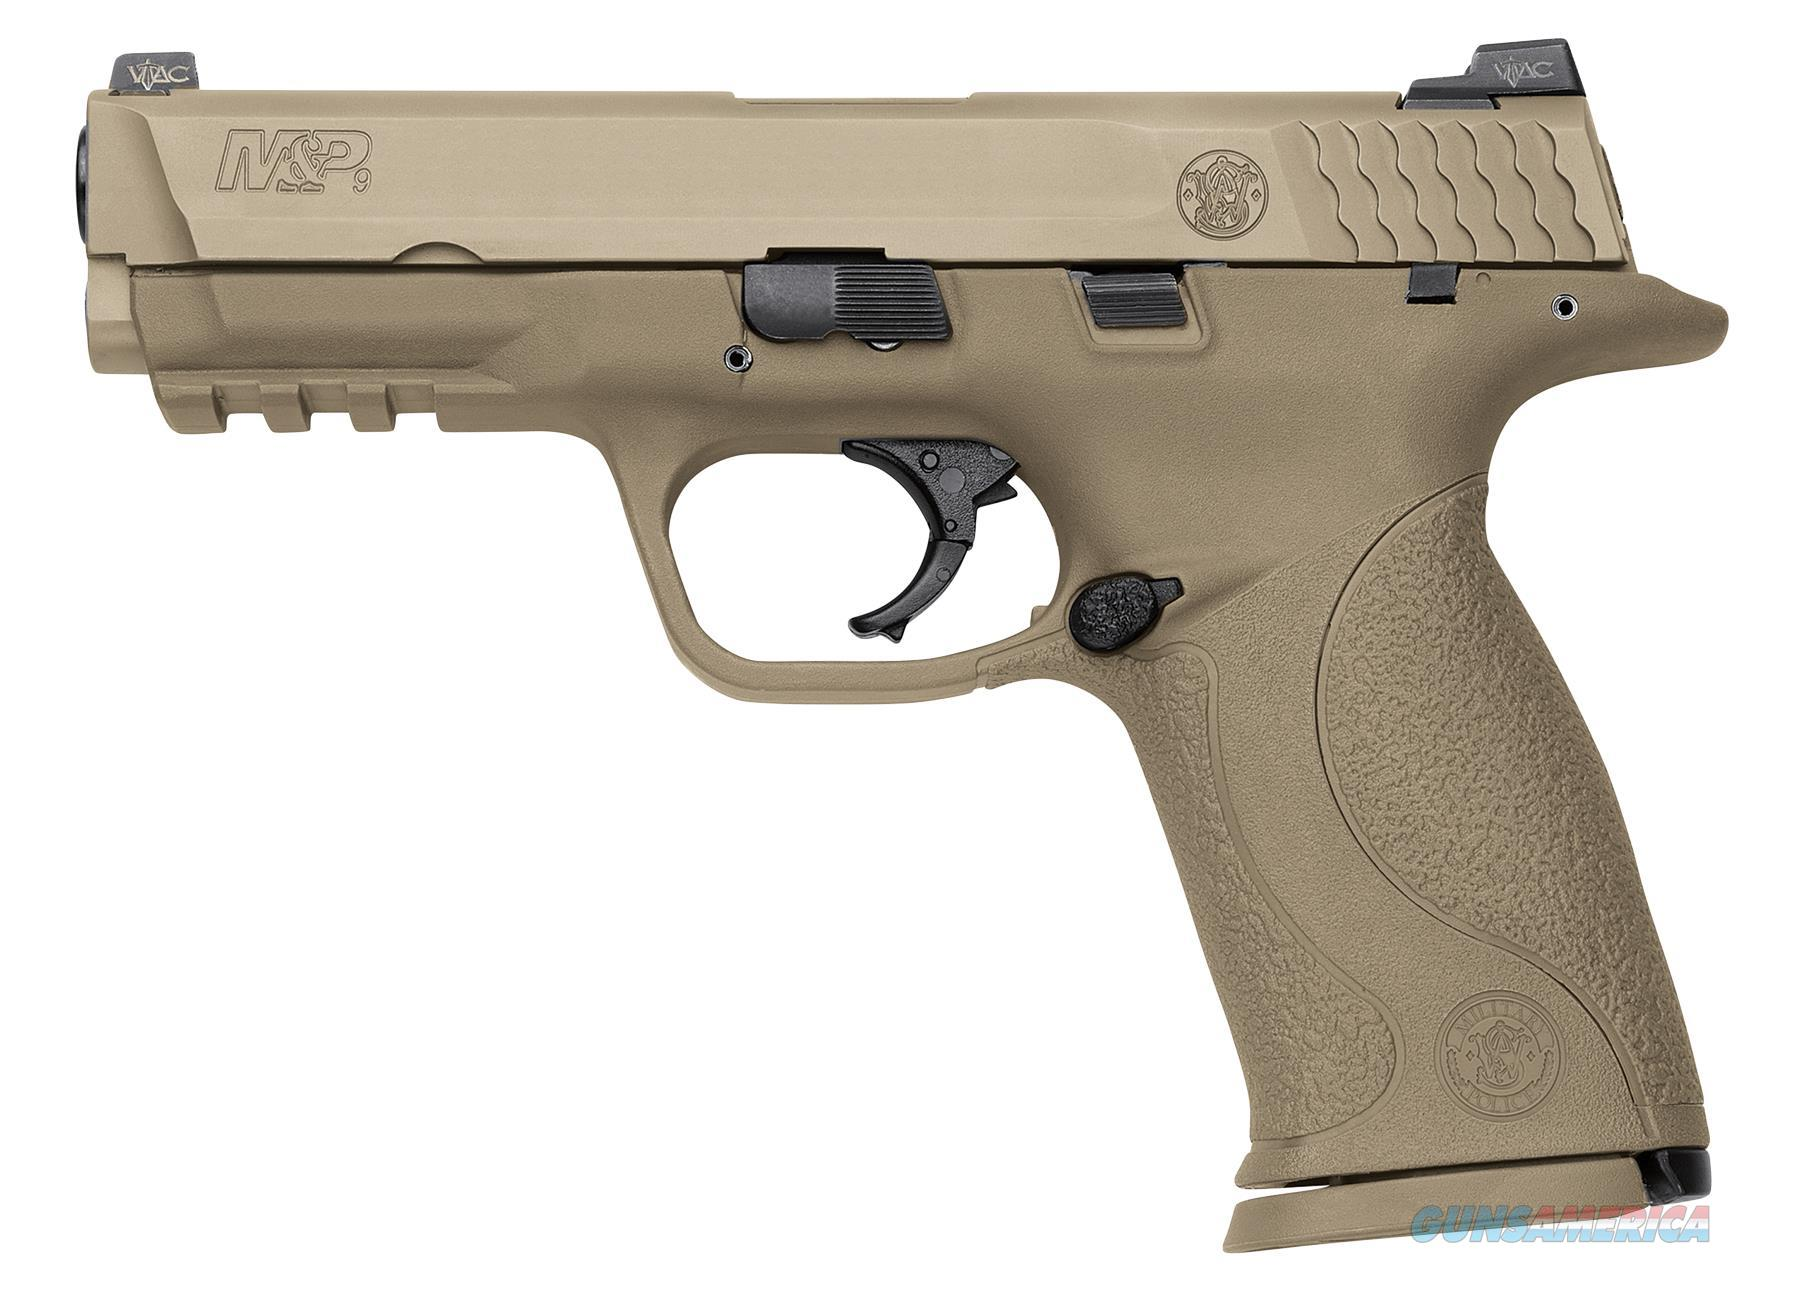 """Smith & Wesson 209921 M&P 9 Vtac Double 9Mm Luger 4.3"""" 17+1 Flat Dark Earth Interchangeable Backstrap Grip Flat Dark Earth Stainless Steel 209921  Guns > Pistols > S Misc Pistols"""